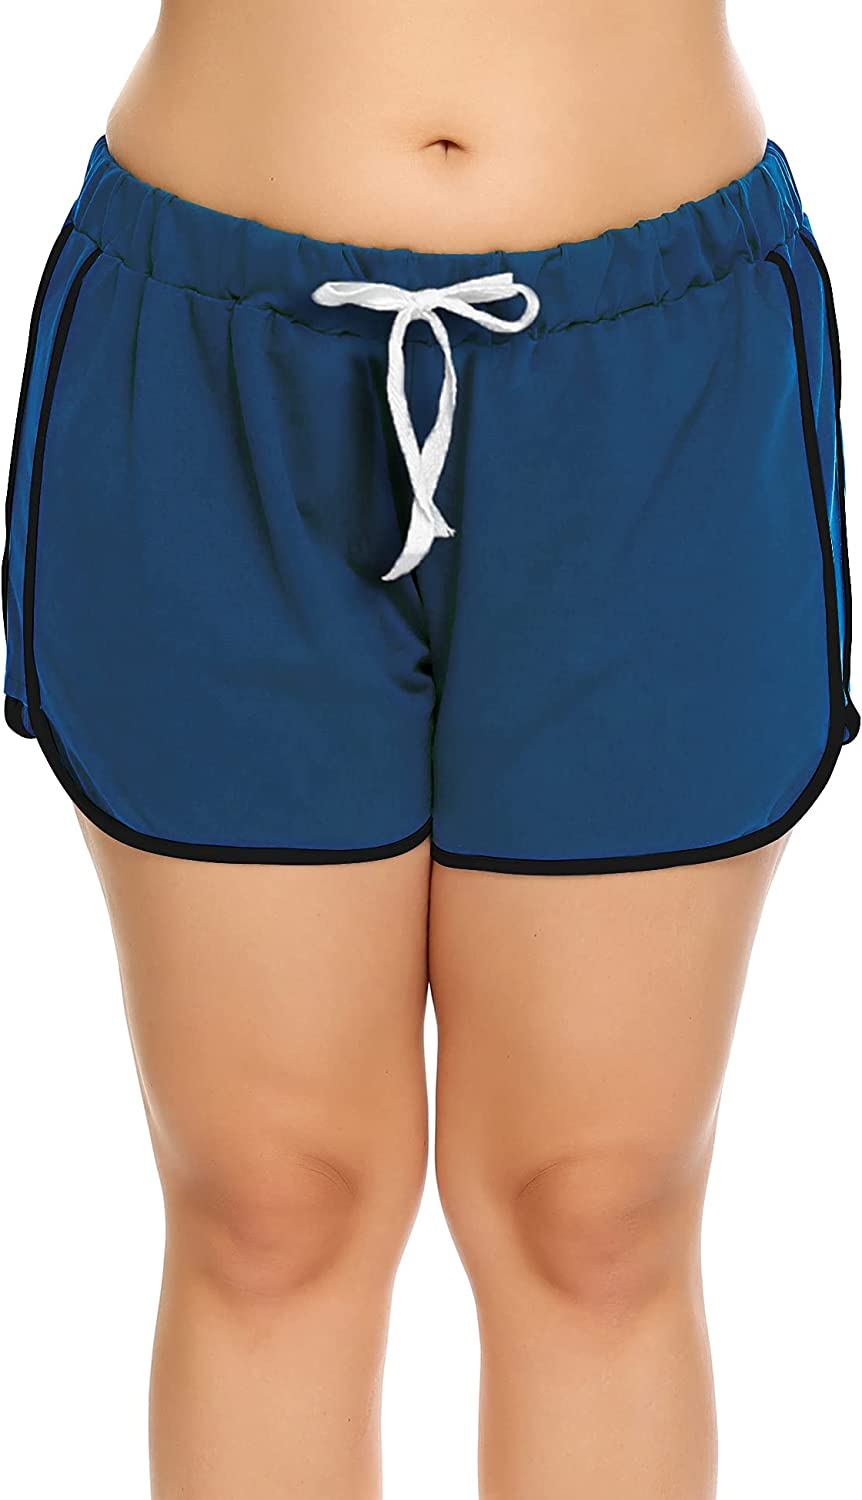 IN'VOLAND Women Plus Size Shorts Dolphin Shorts Plus Size Running Short for Workout Gym Sports Active Yoga